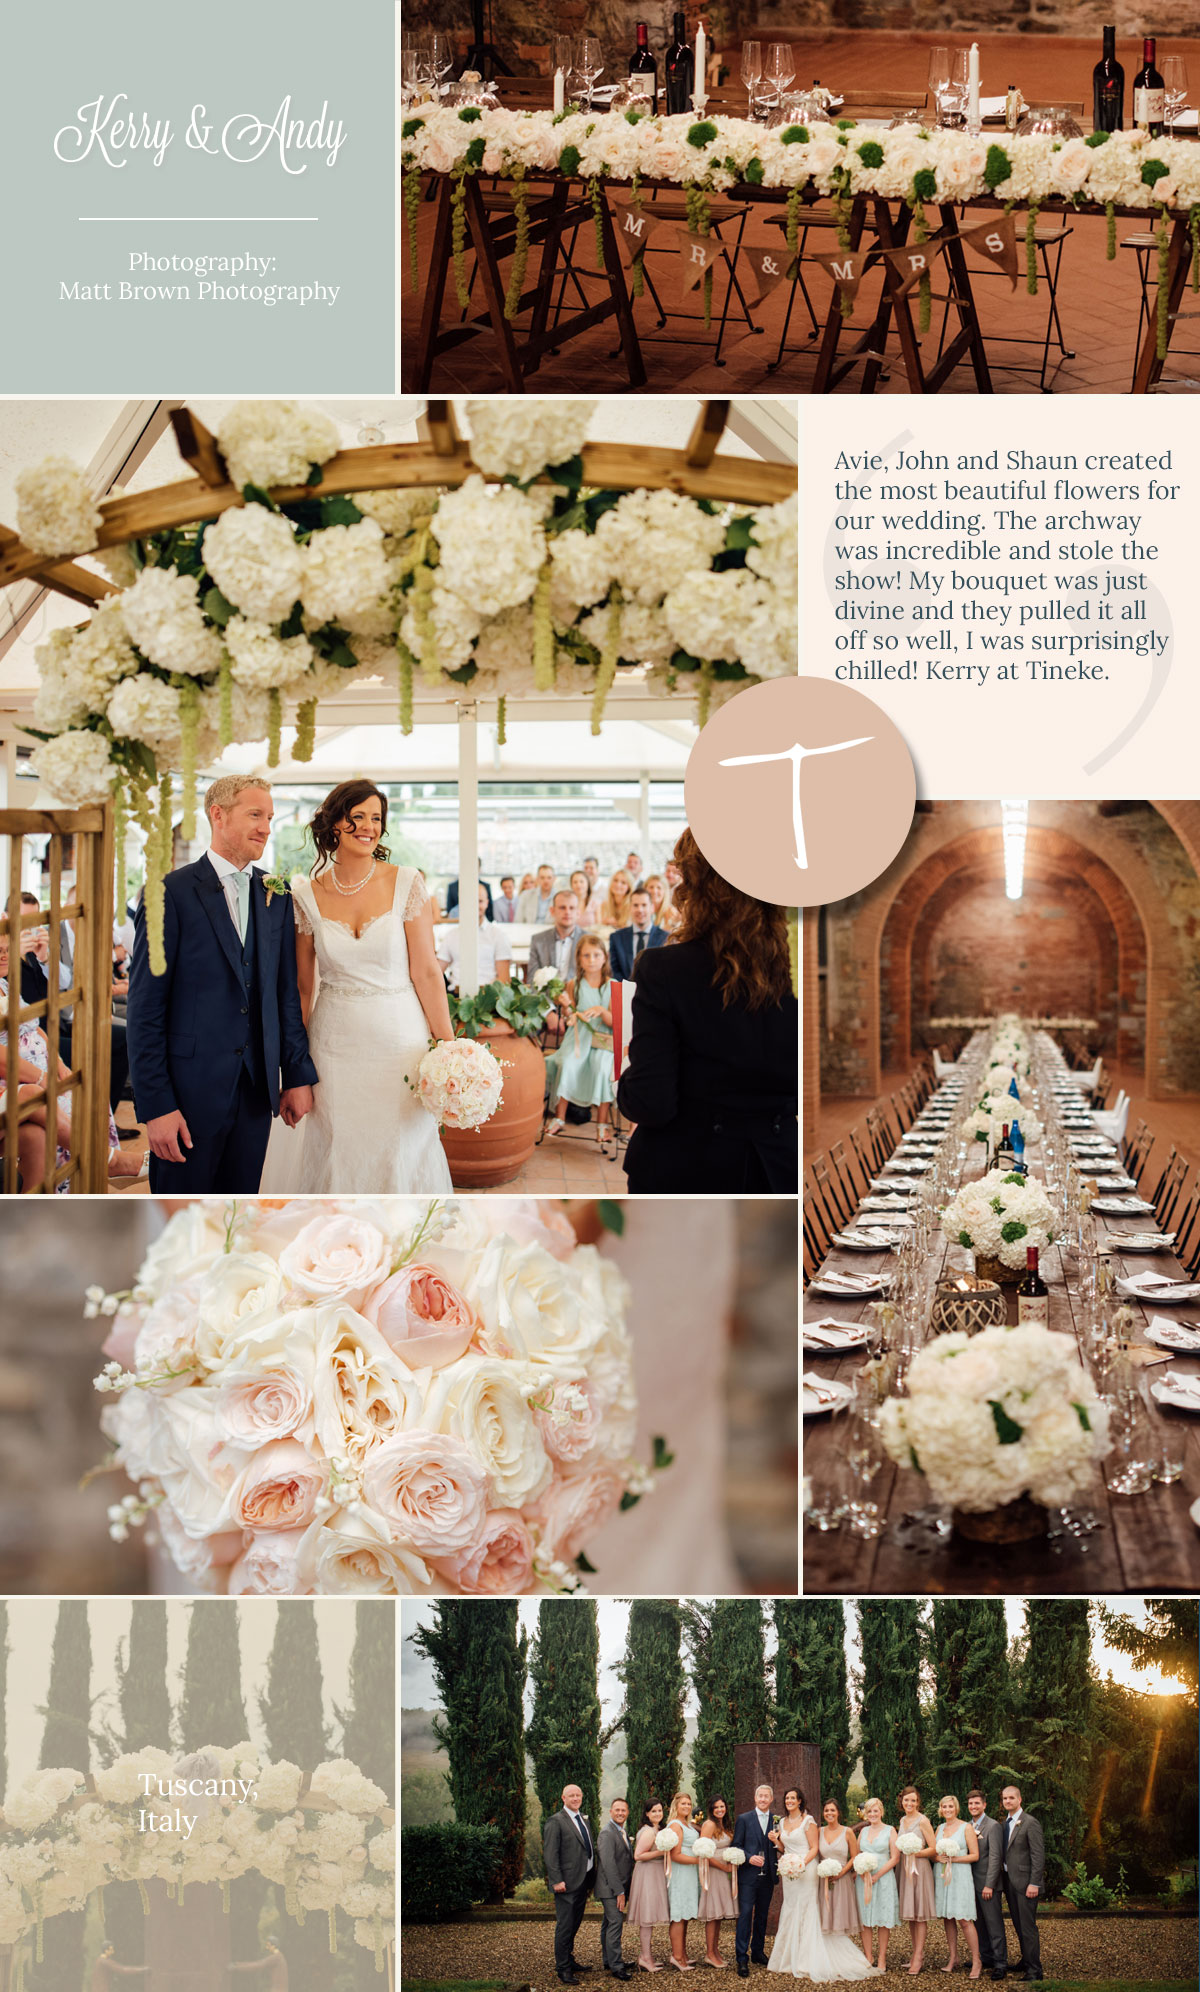 A tuscany wedding by Tineke floral design with beautiful hydrangeas